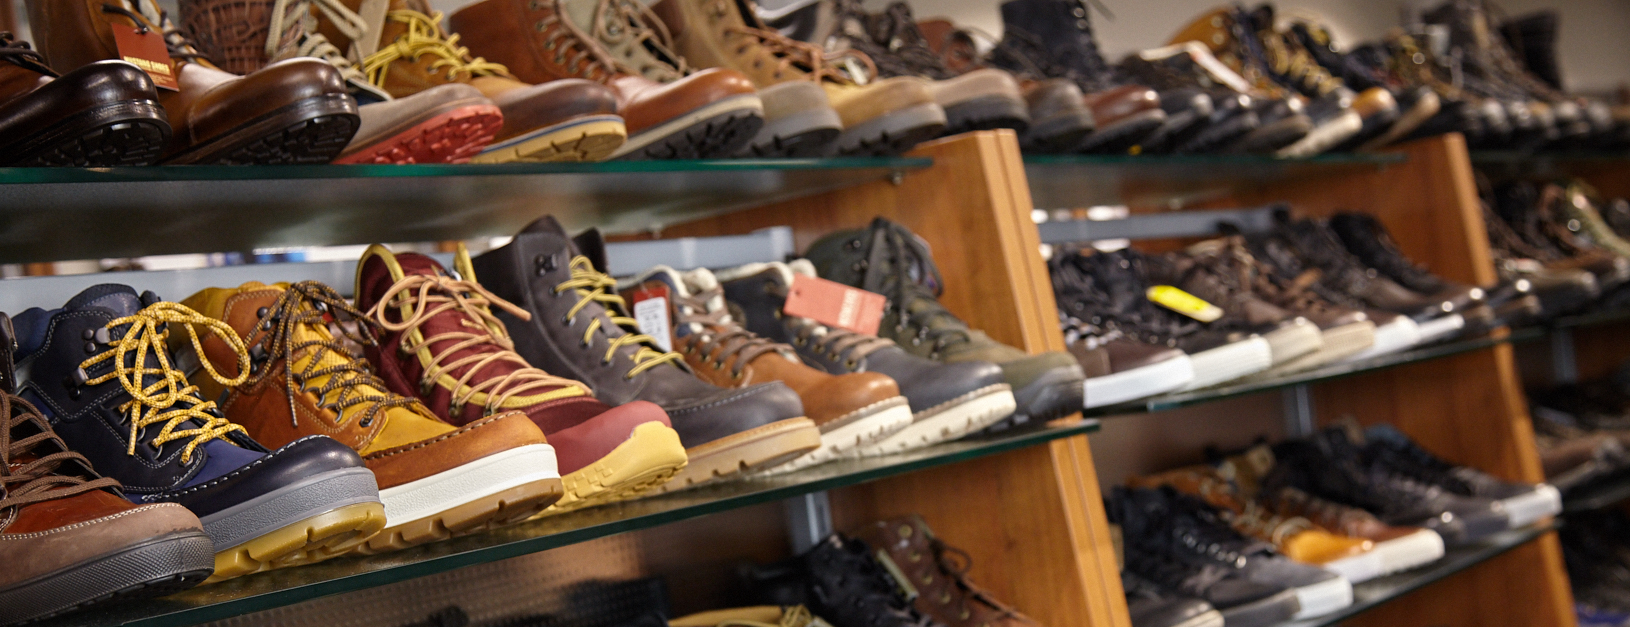 wessels-schuhe-2017-home-06